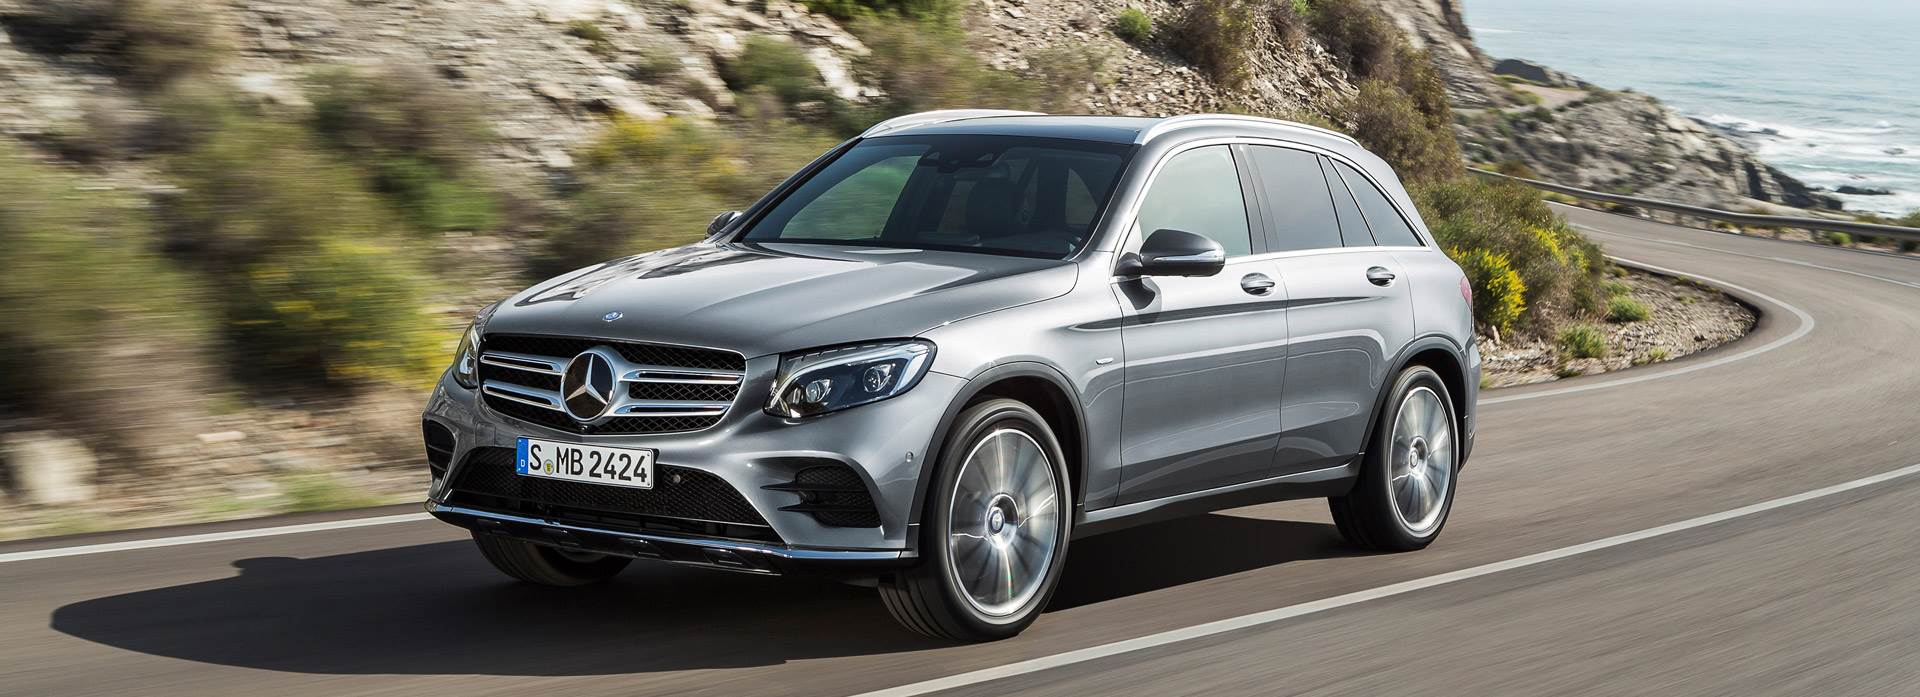 New Mercedes-Benz GLC in silver